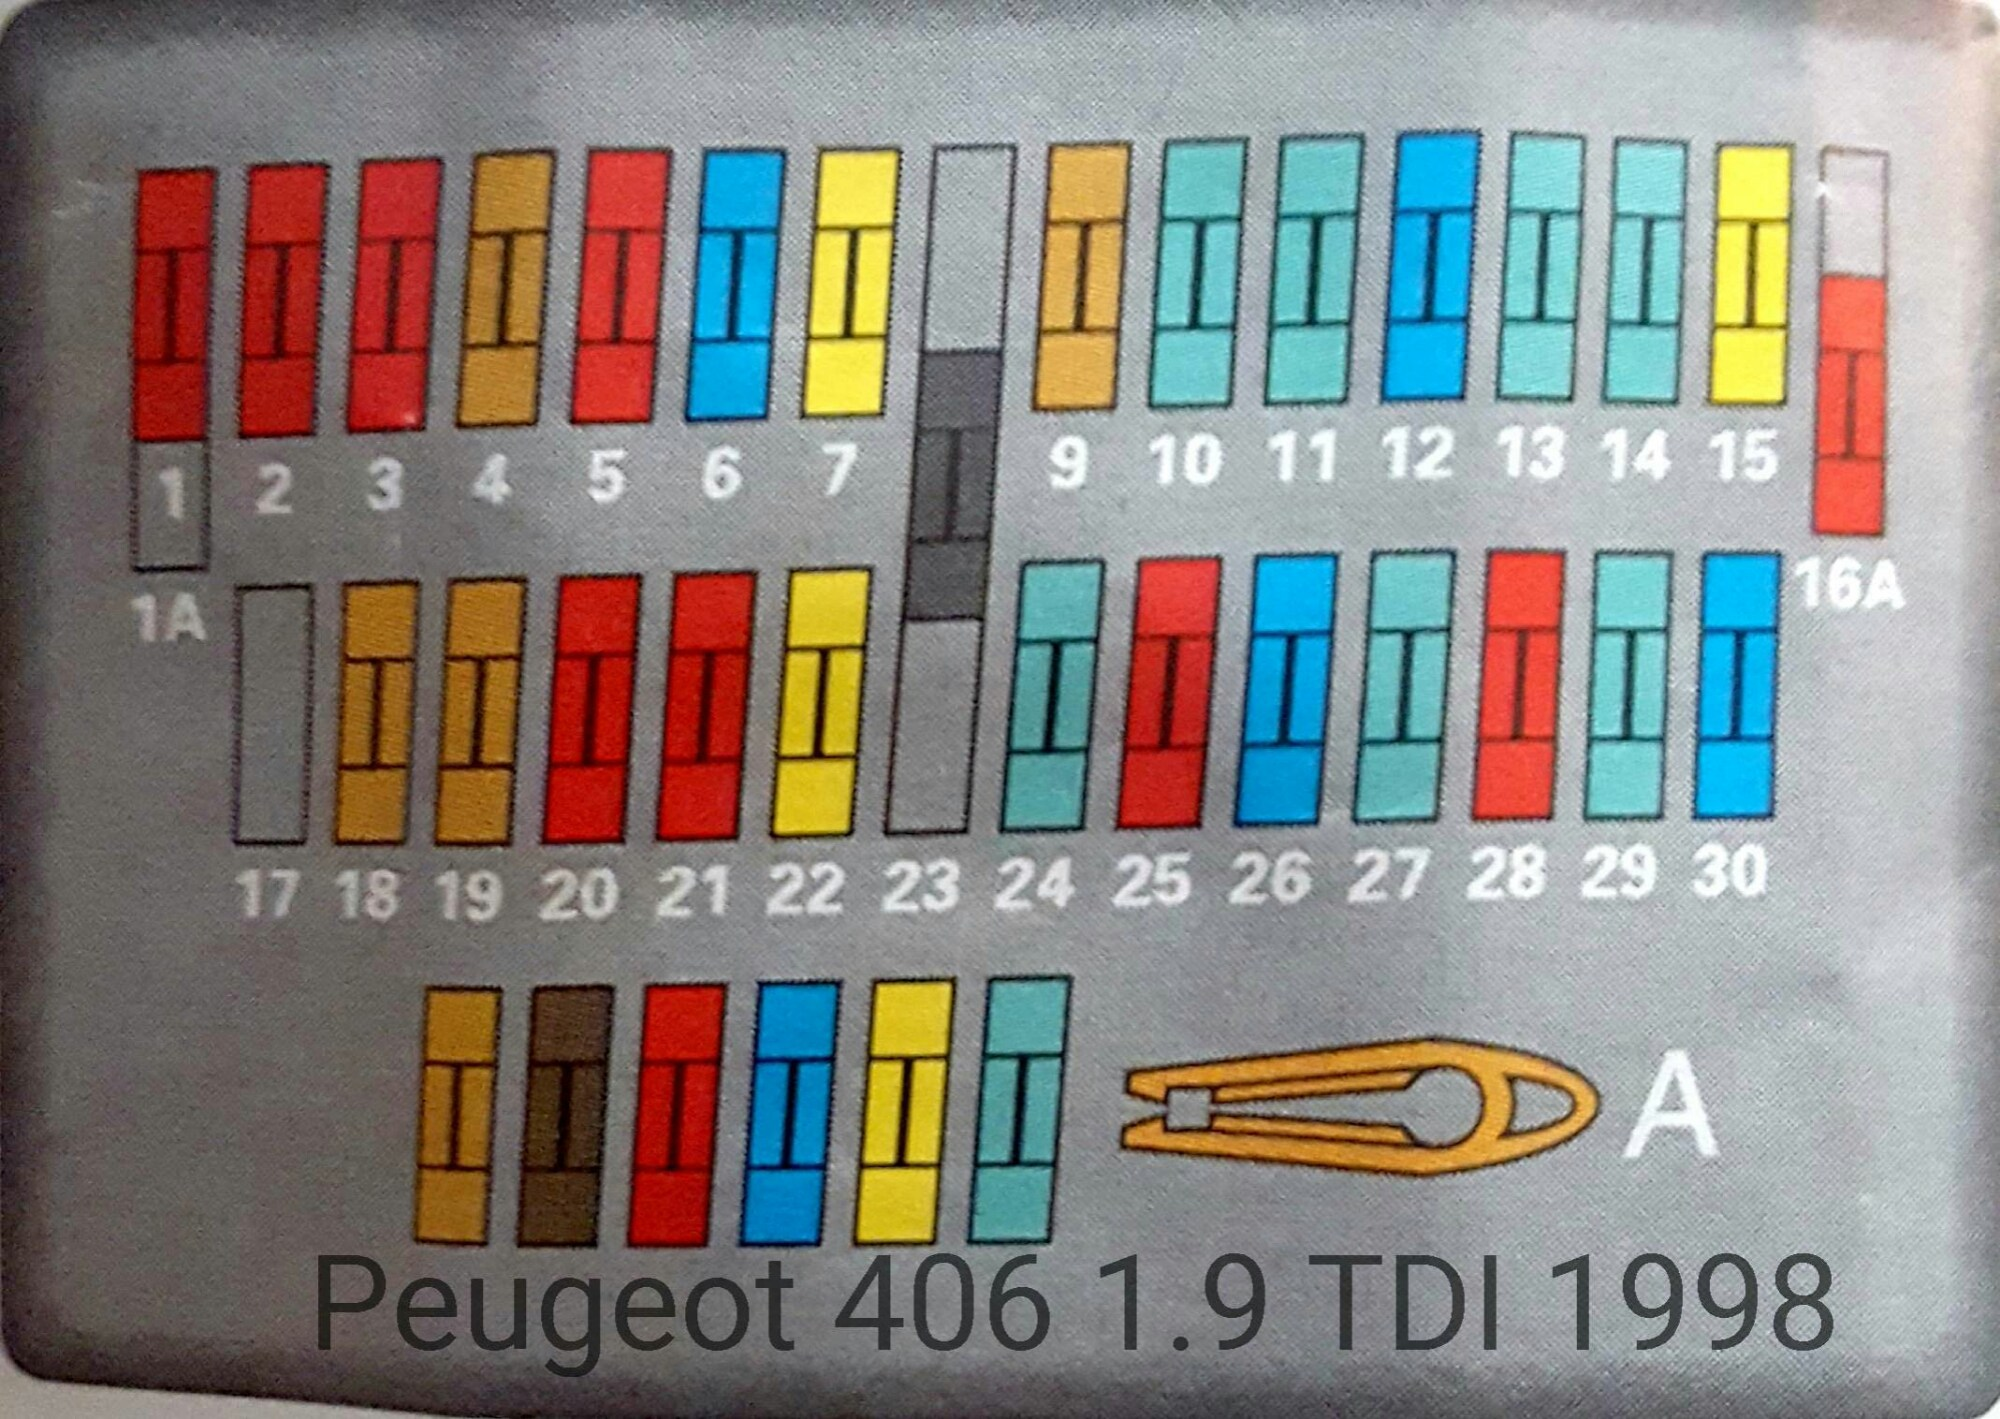 hight resolution of fuse box on peugeot 406 wiring diagram postpeugeot 406 1 9 tdi 1998 fuse box cartips